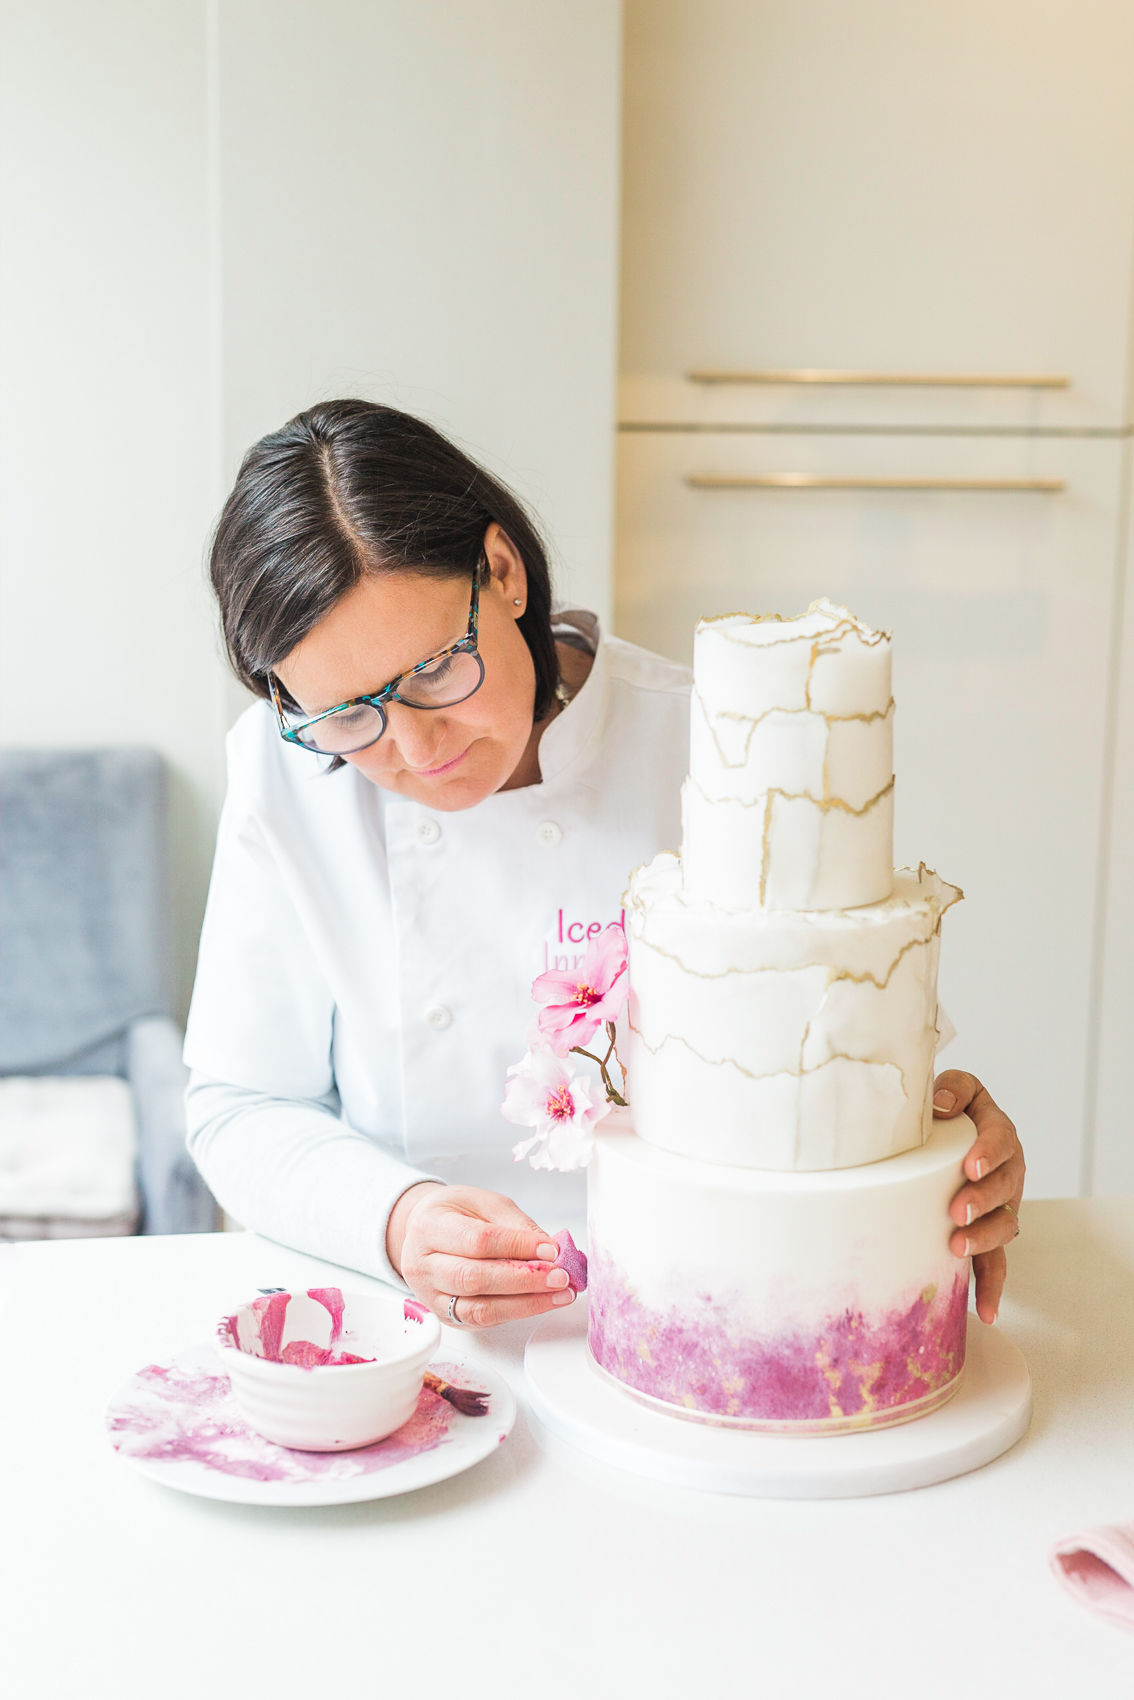 Cake Maker & Bakery Brand Photographer Surrey & London | Brand Photography for Erica at Iced Innovations Cakes